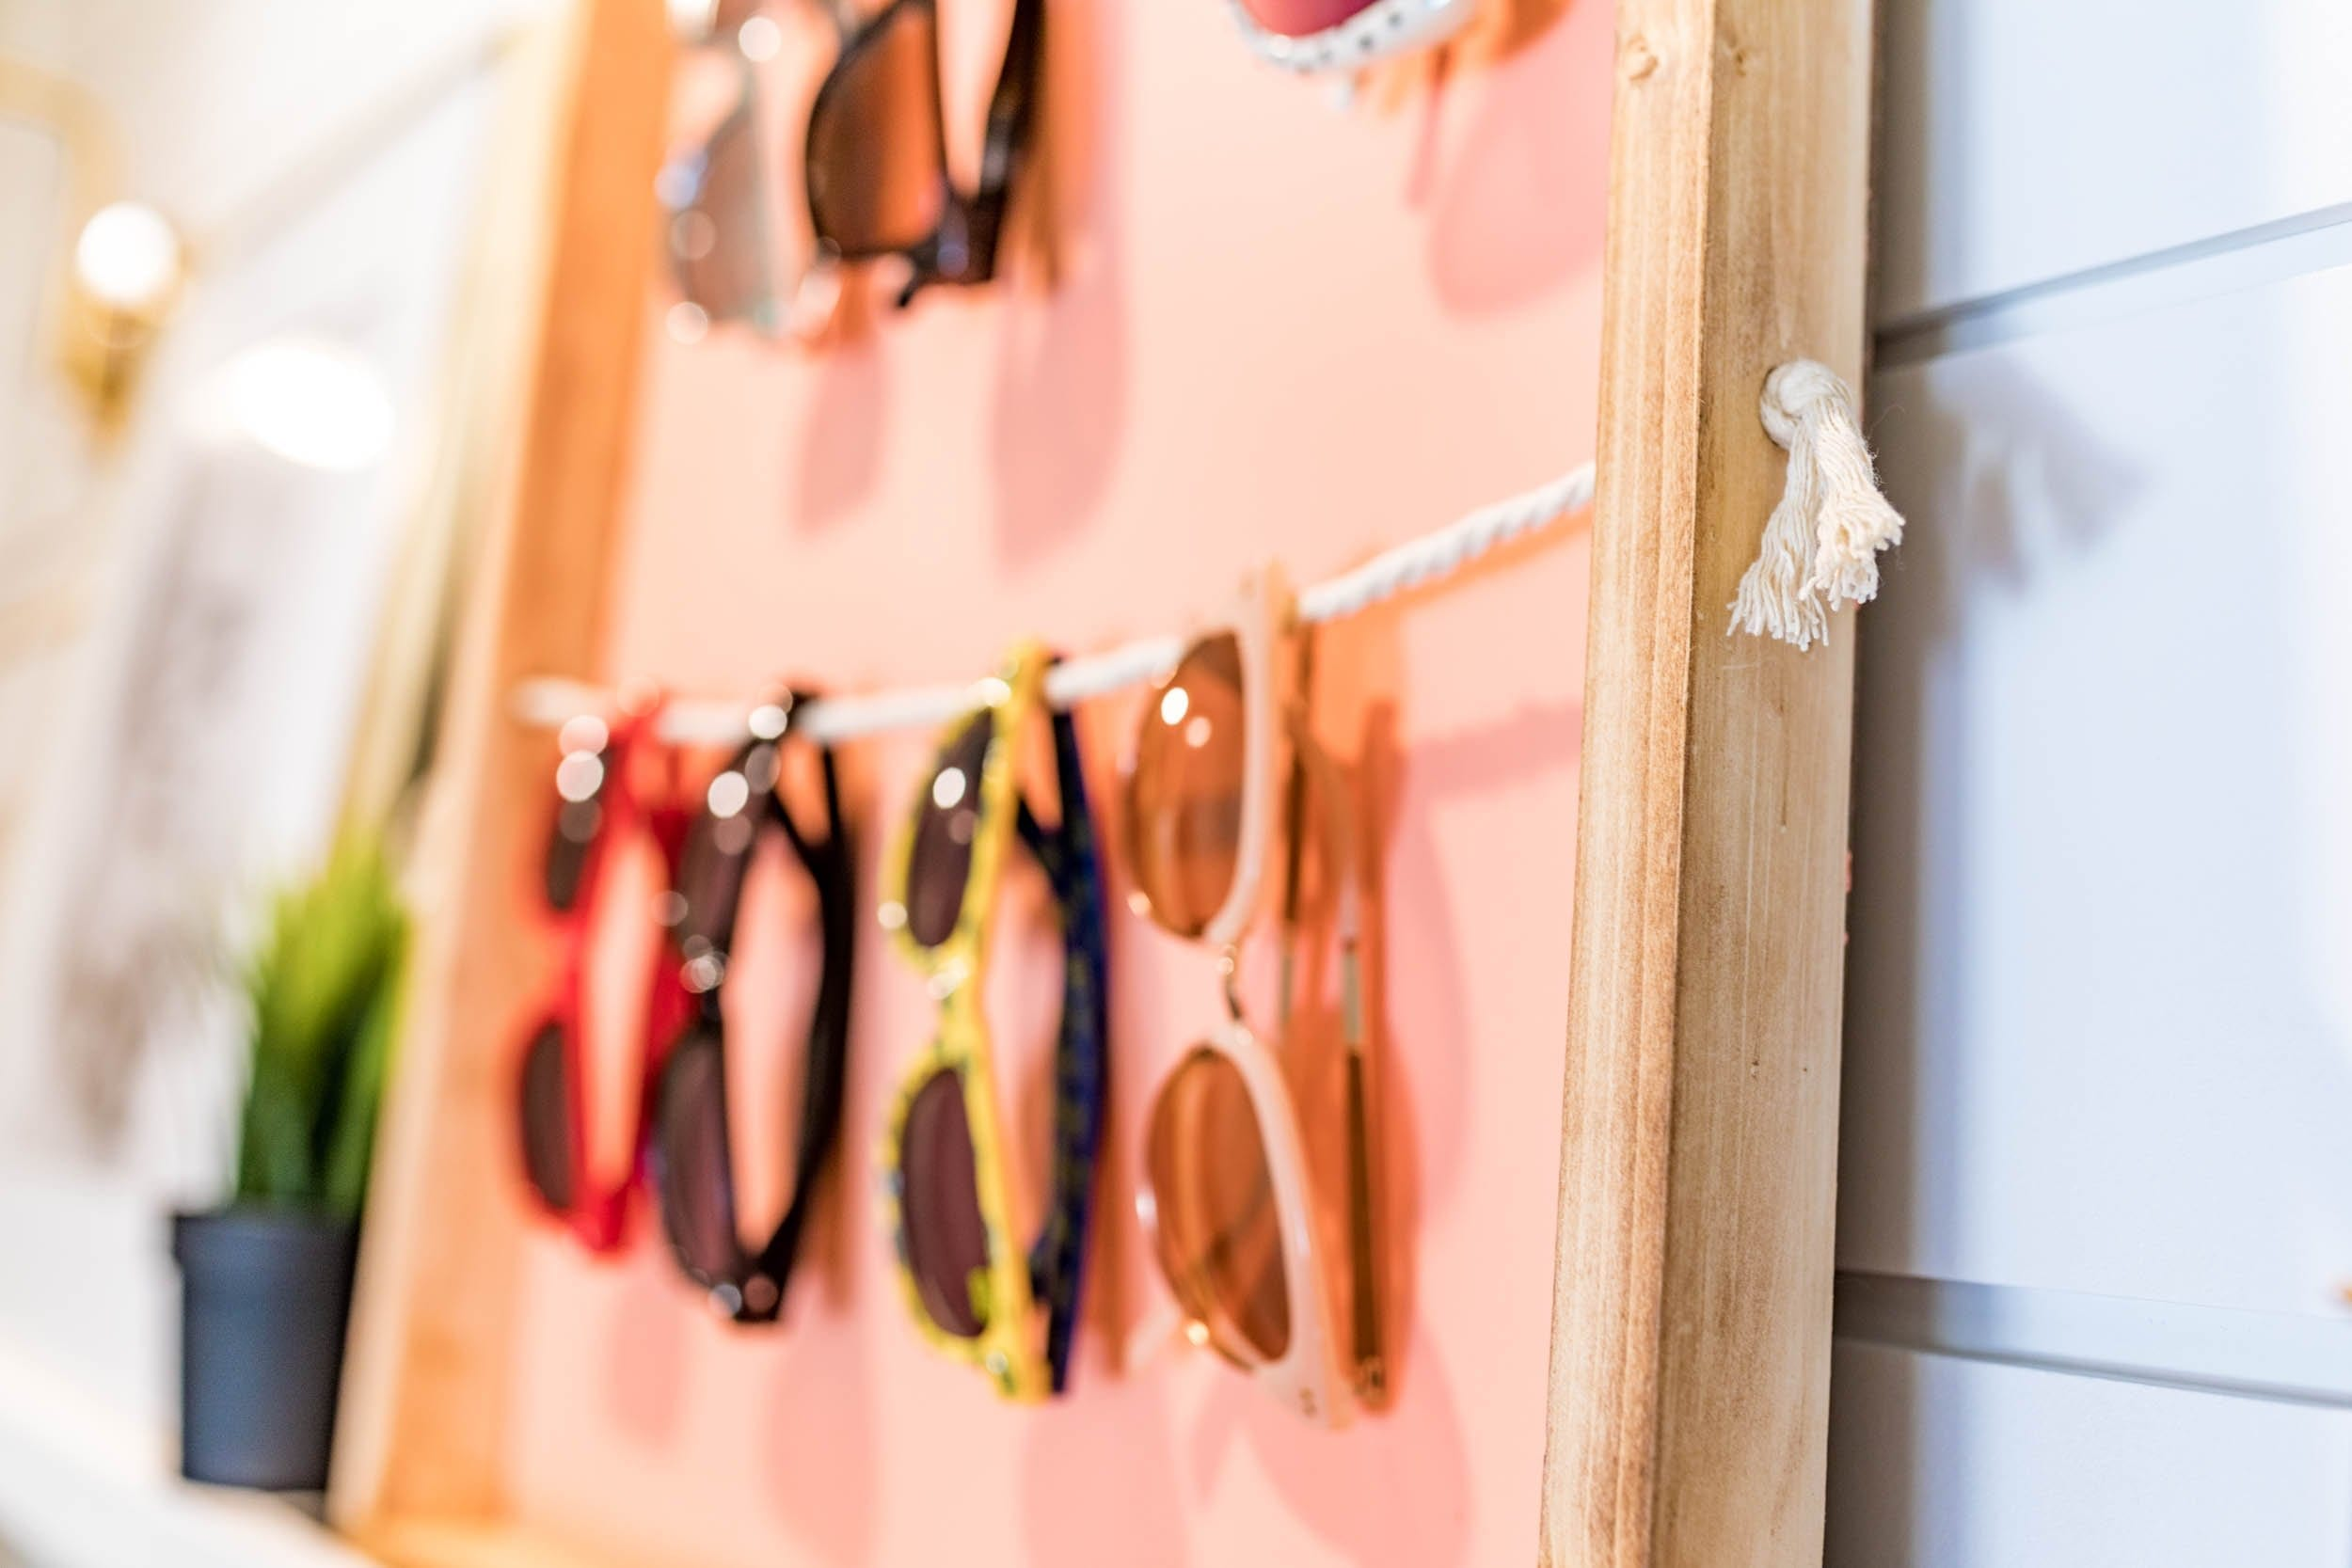 THIS IS GENIUS!! sunglasses holder diy | sunglasses holder diy display | sunglasses holder wall | sunglasses holder wall storage ideas | diy sunglass display | diy sunglass holder | home decor | DIY Home decor ideas | Never Skip Brunch by Cara Newhart | #decor #diy #summer #neverskipbrunch